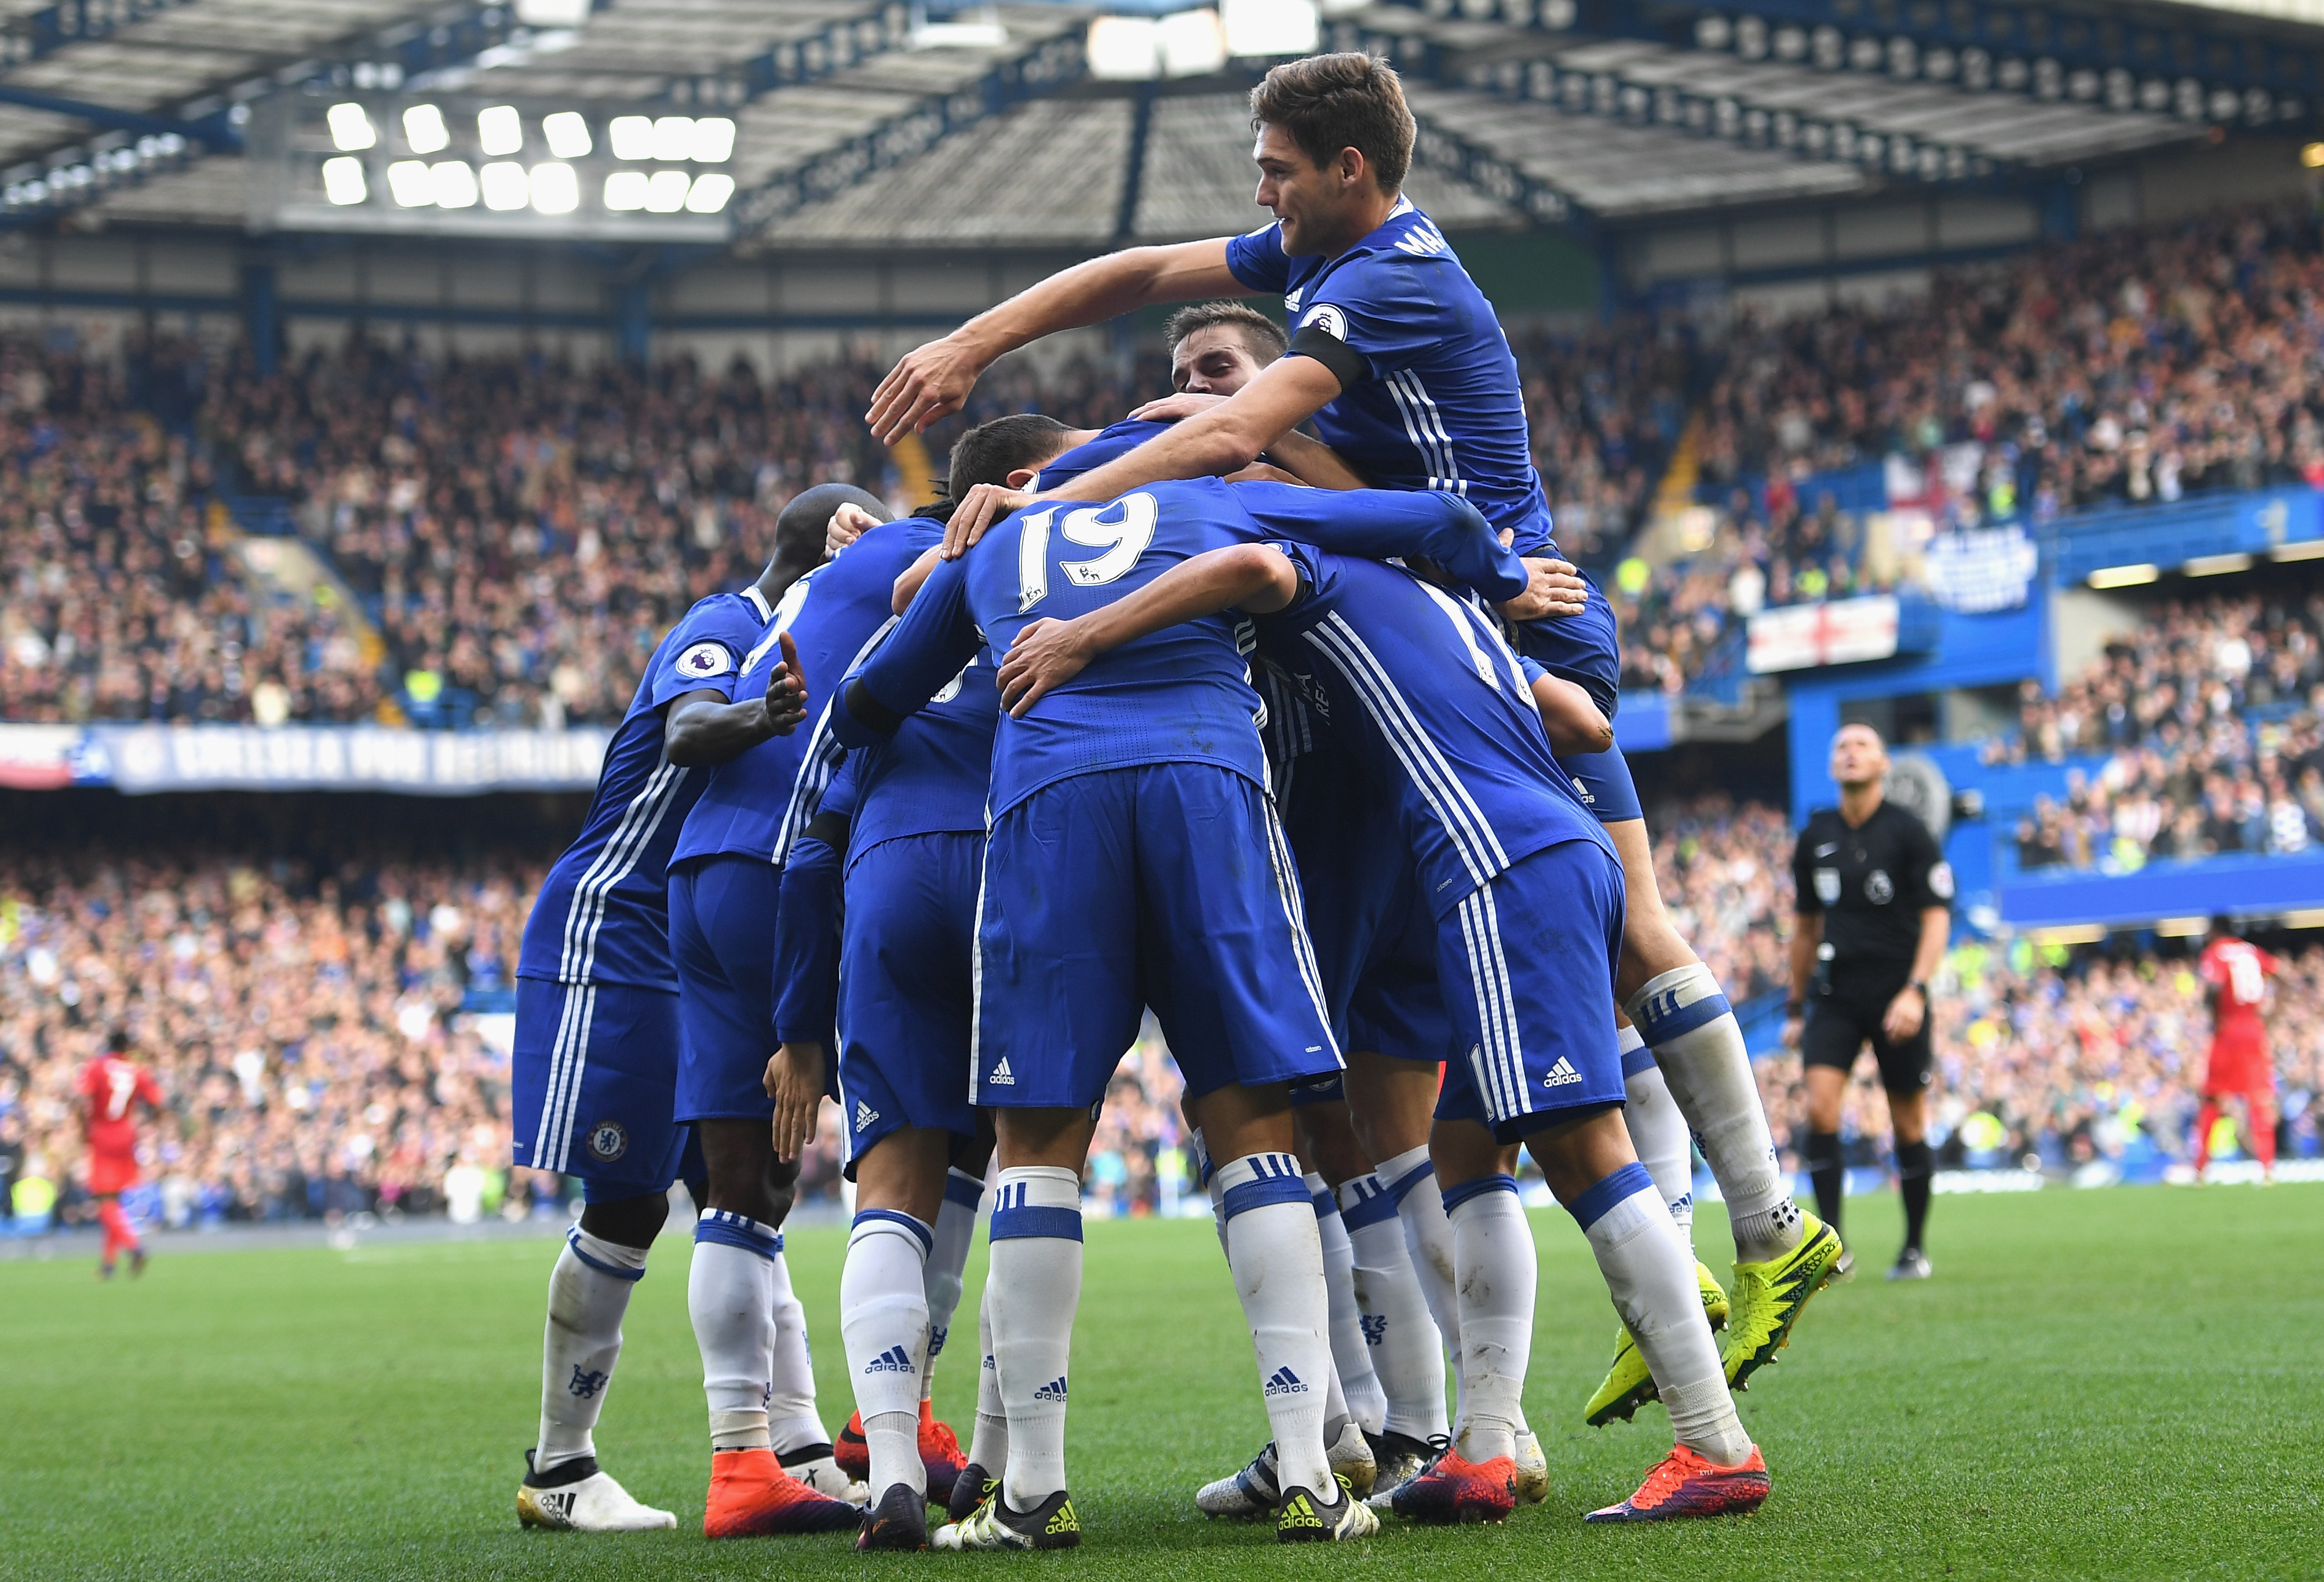 Chelsea 3-0 Leicester City Player Ratings: Pedro, Marcos Alonso and Eden Hazard shine as Wes Morgan and Leicester flounder